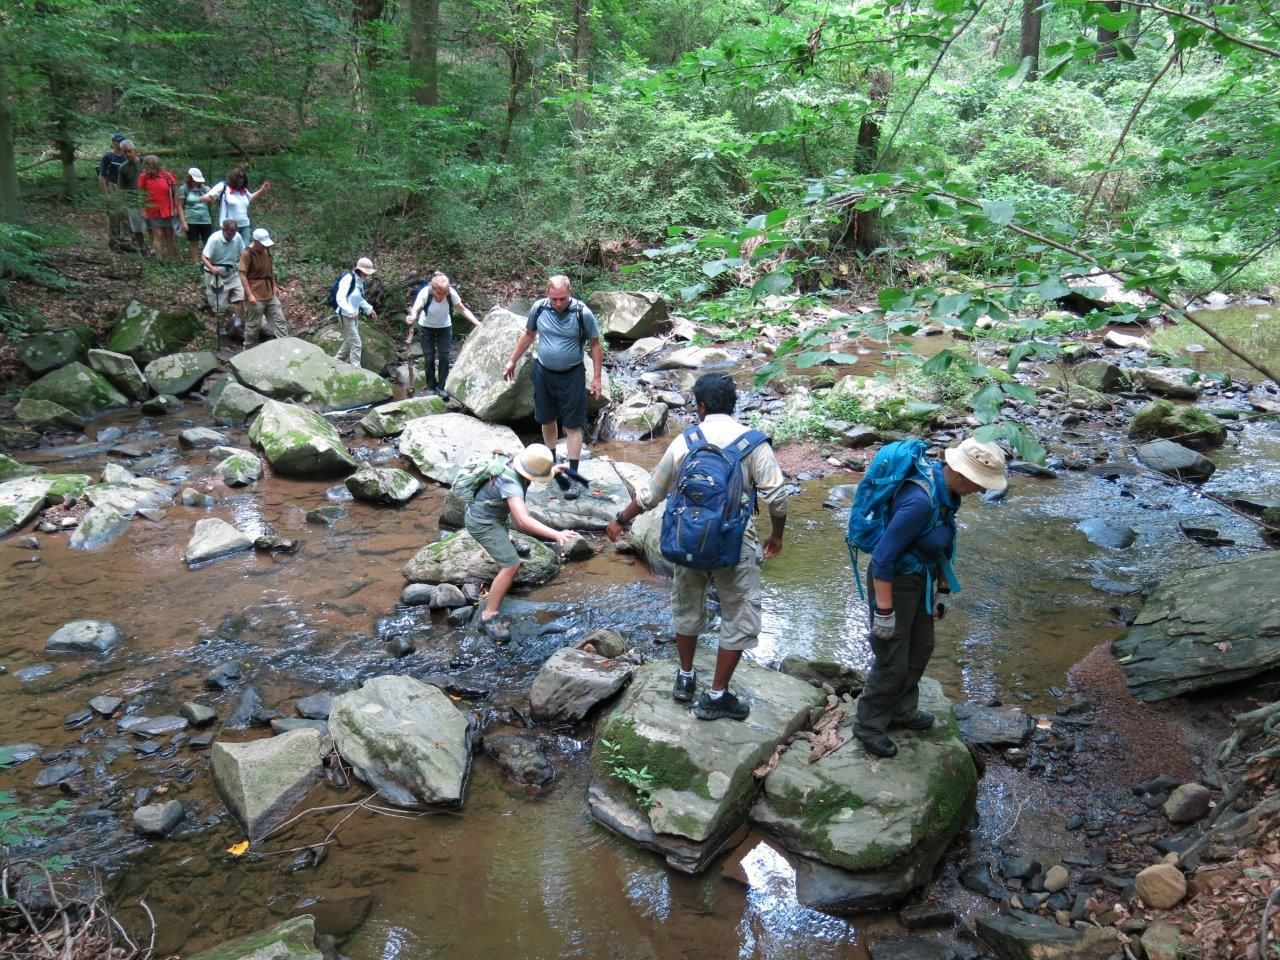 Outdoor Club of South Jersey - Hiking/Camping/Backpacking